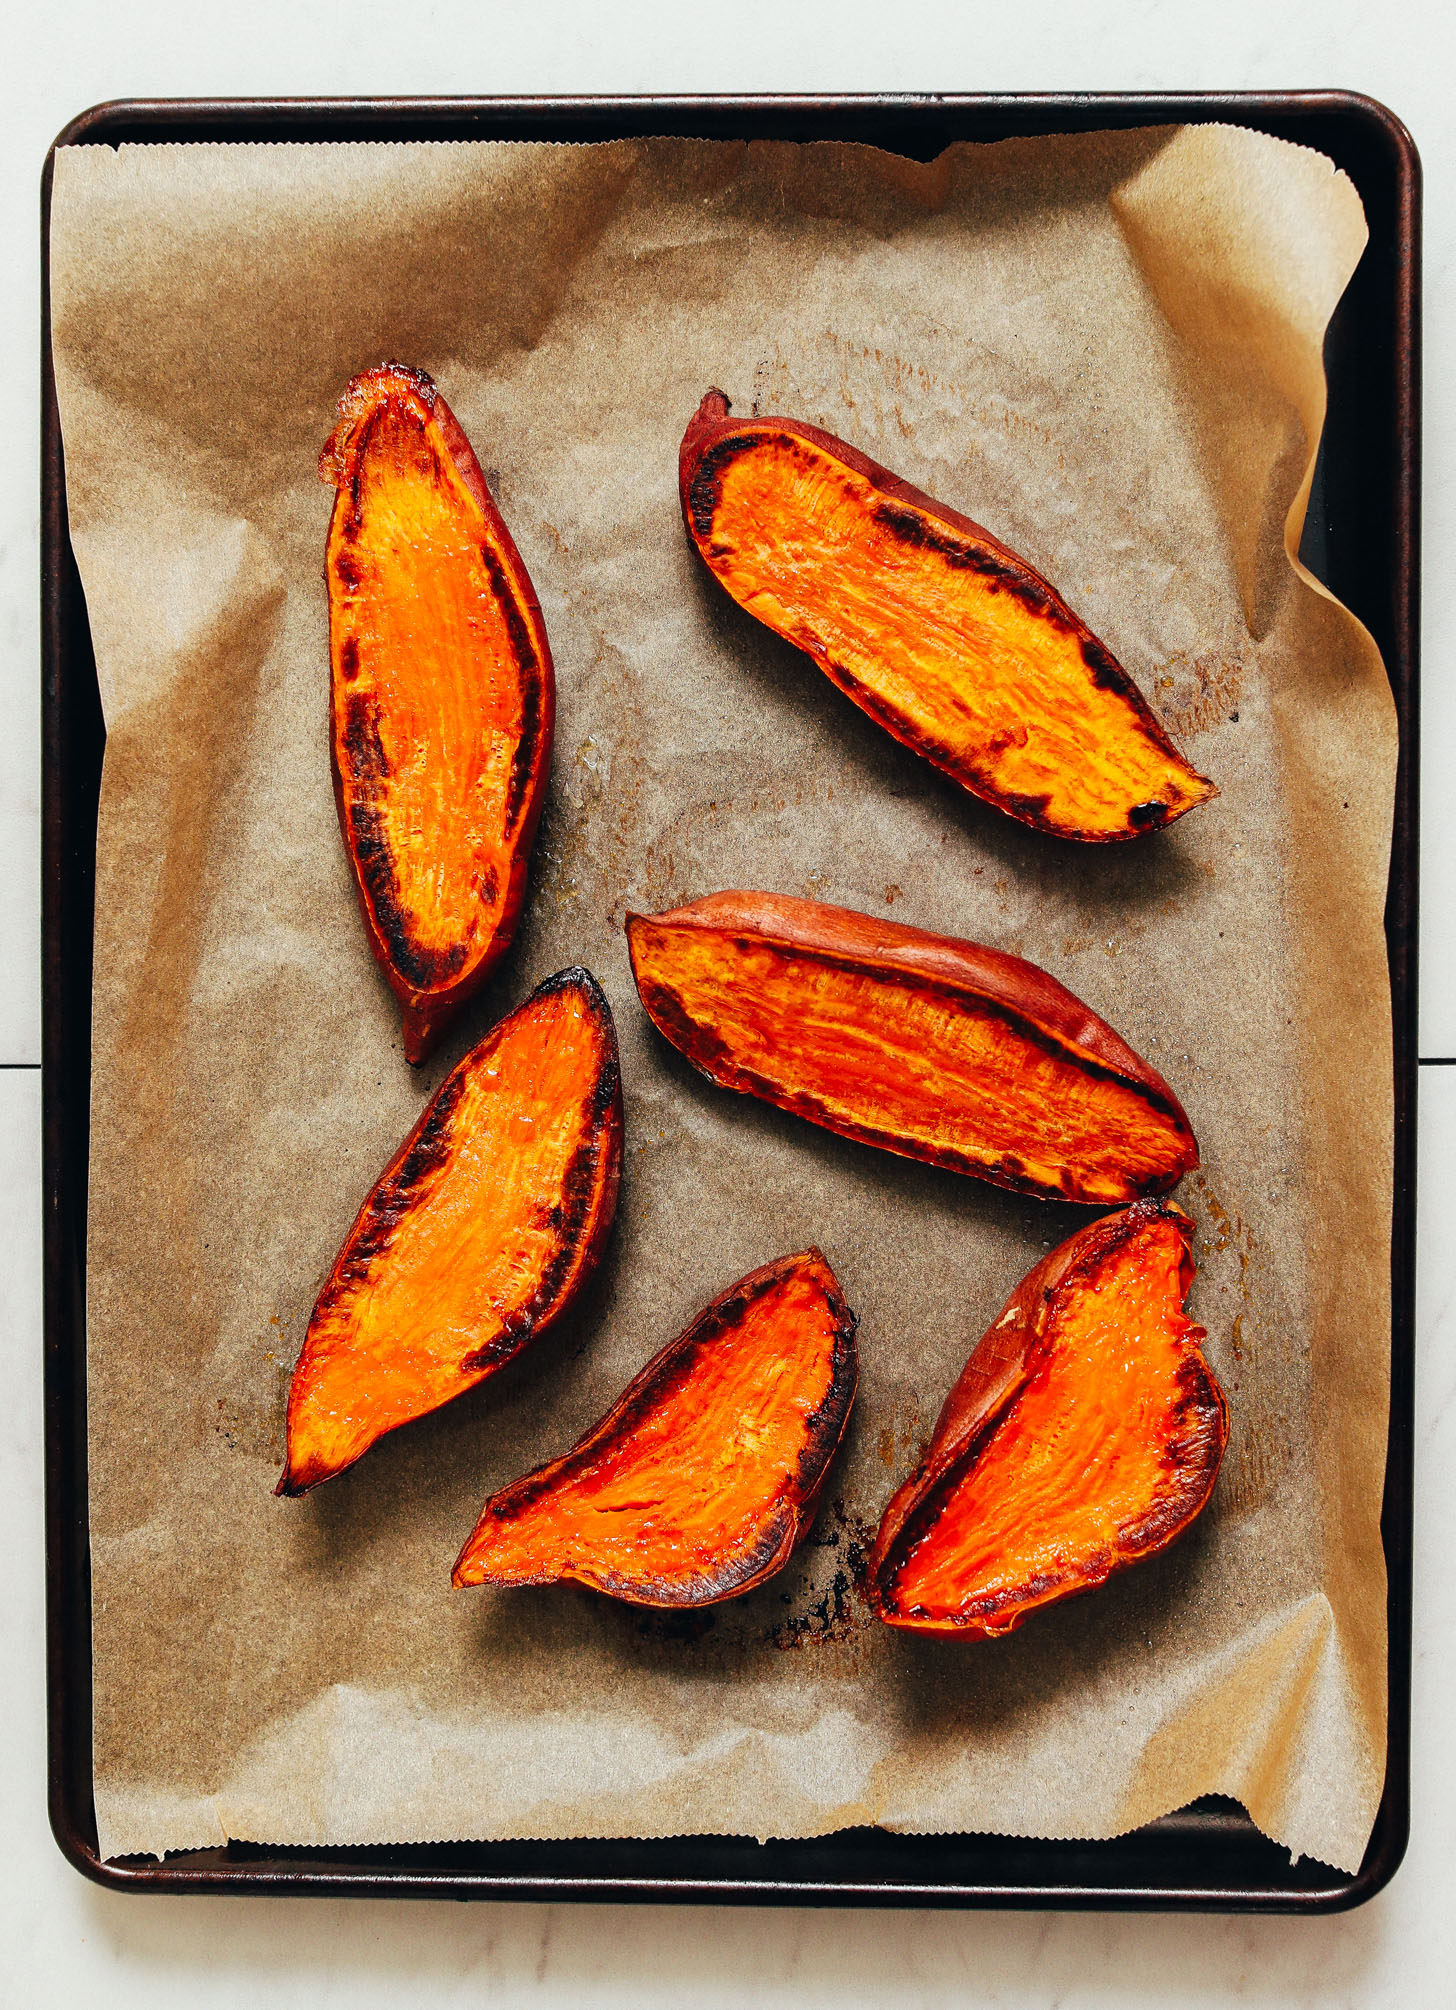 Parchment-lined baking sheet of halved and roasted sweet potatoes